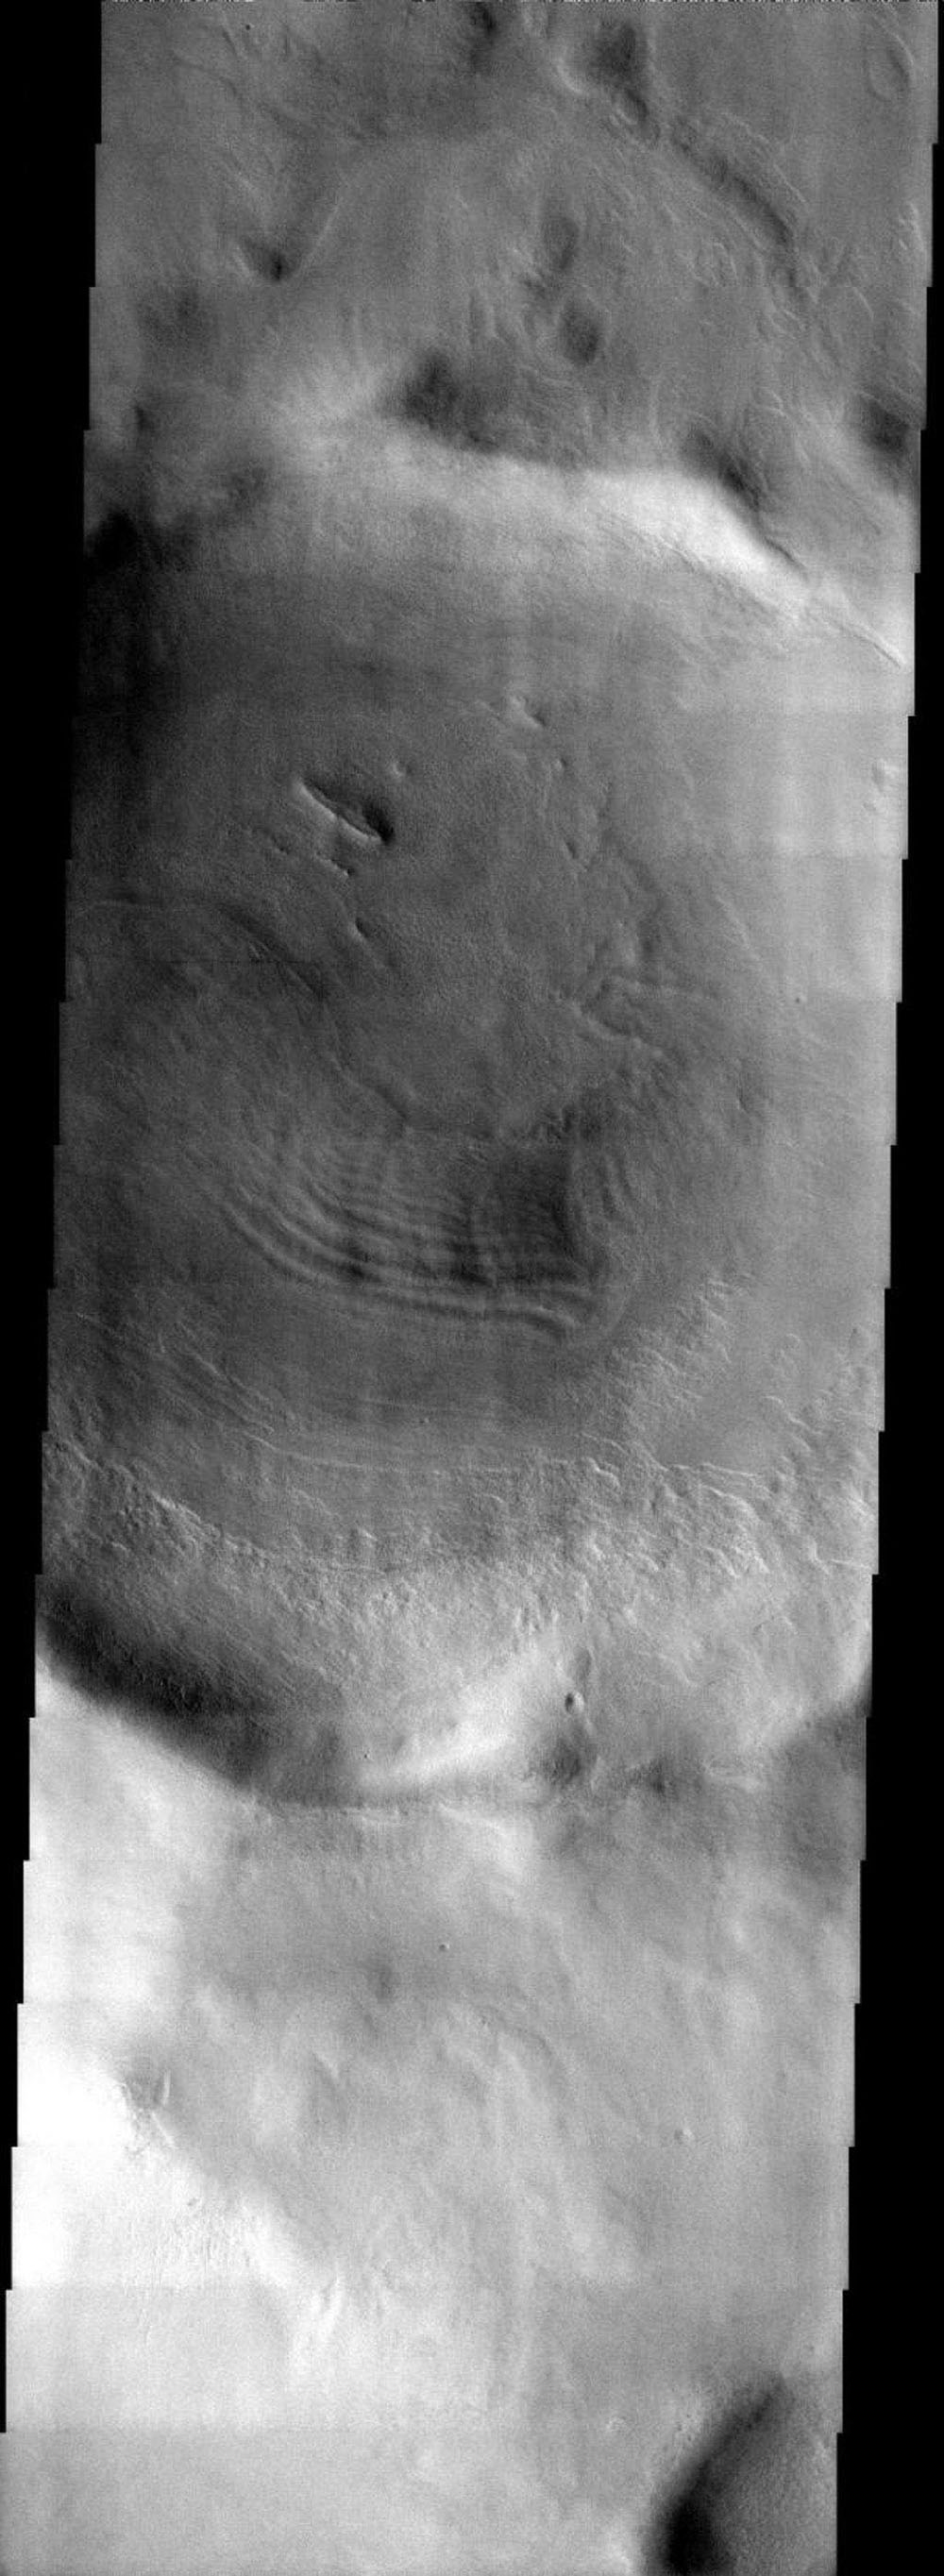 NASA's Mars Odyssey spacecraft captured this image in September 2003, showing a crater on Mars along the southeast rim of the Hellas Basin,hosting an eroded layered deposit like many of the neighboring craters.